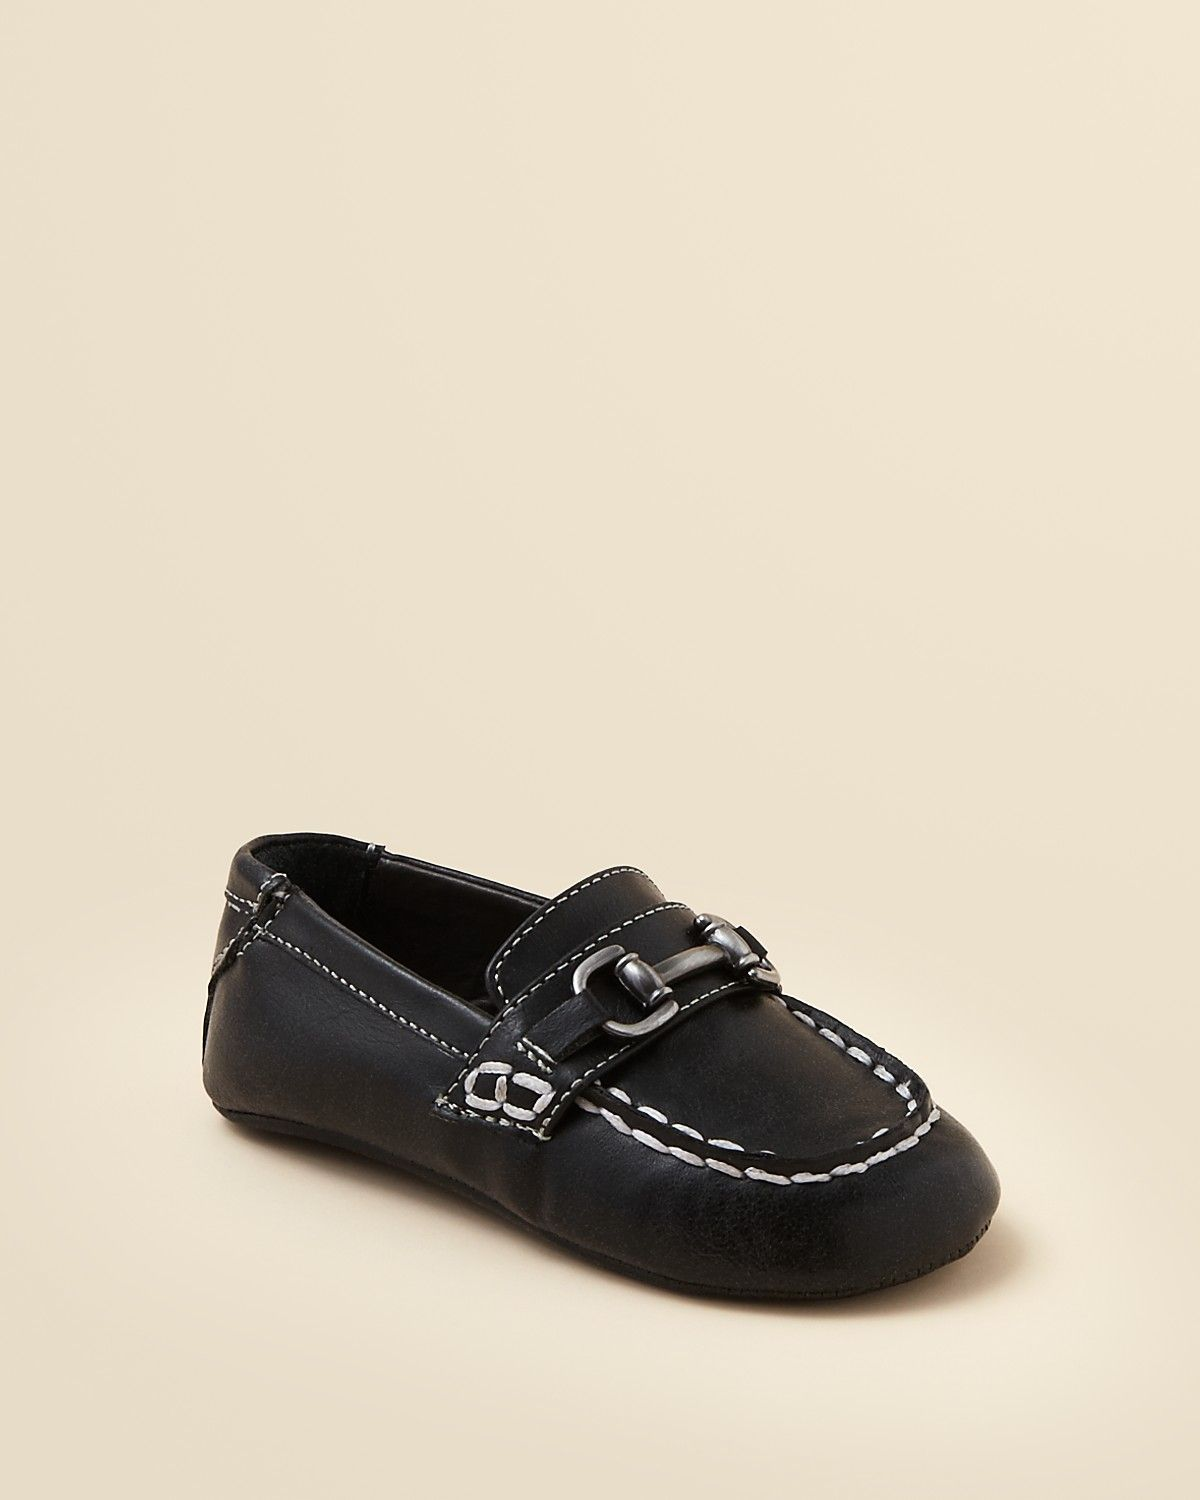 980415f404d Cole Haan Infant Boys  Mini Bit Loafers - Baby